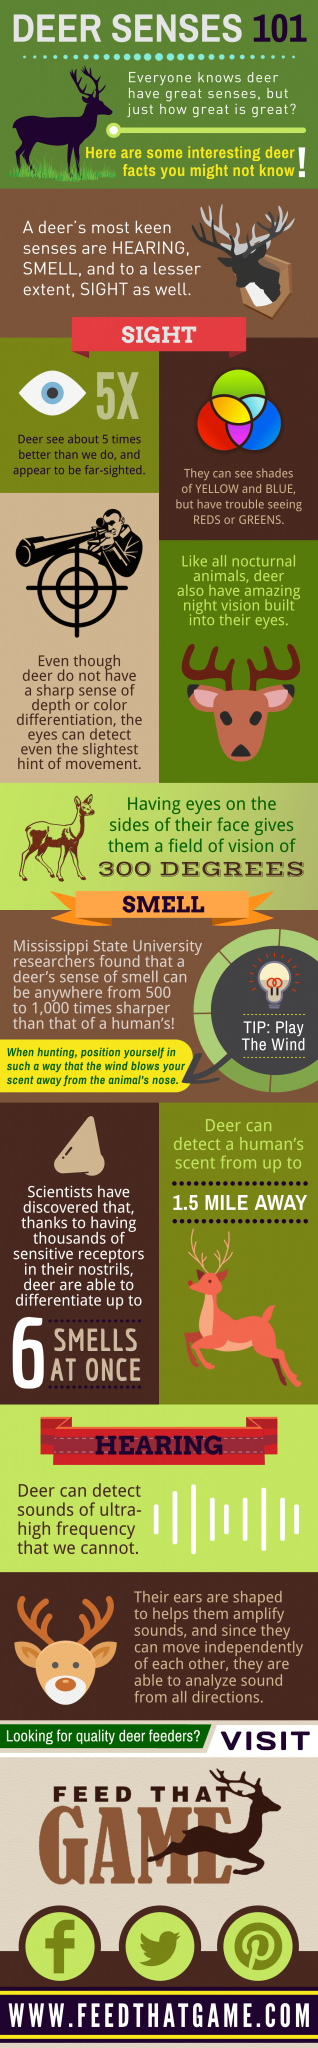 Deer Senses 101: how great are they?